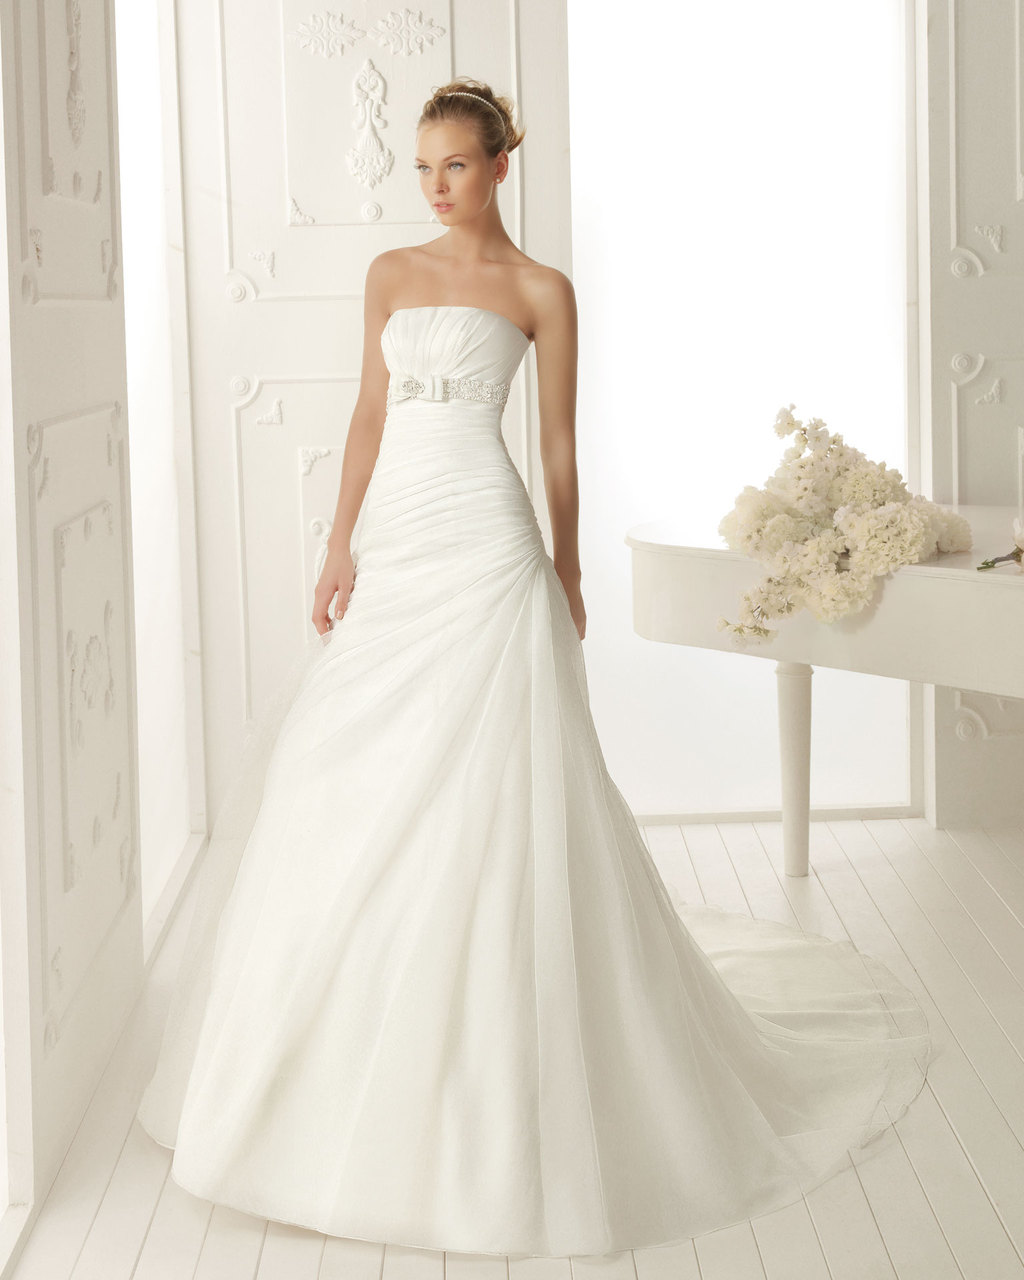 Aire-barcelona-wedding-dress-2013-vintage-bridal-collection-vanity.full